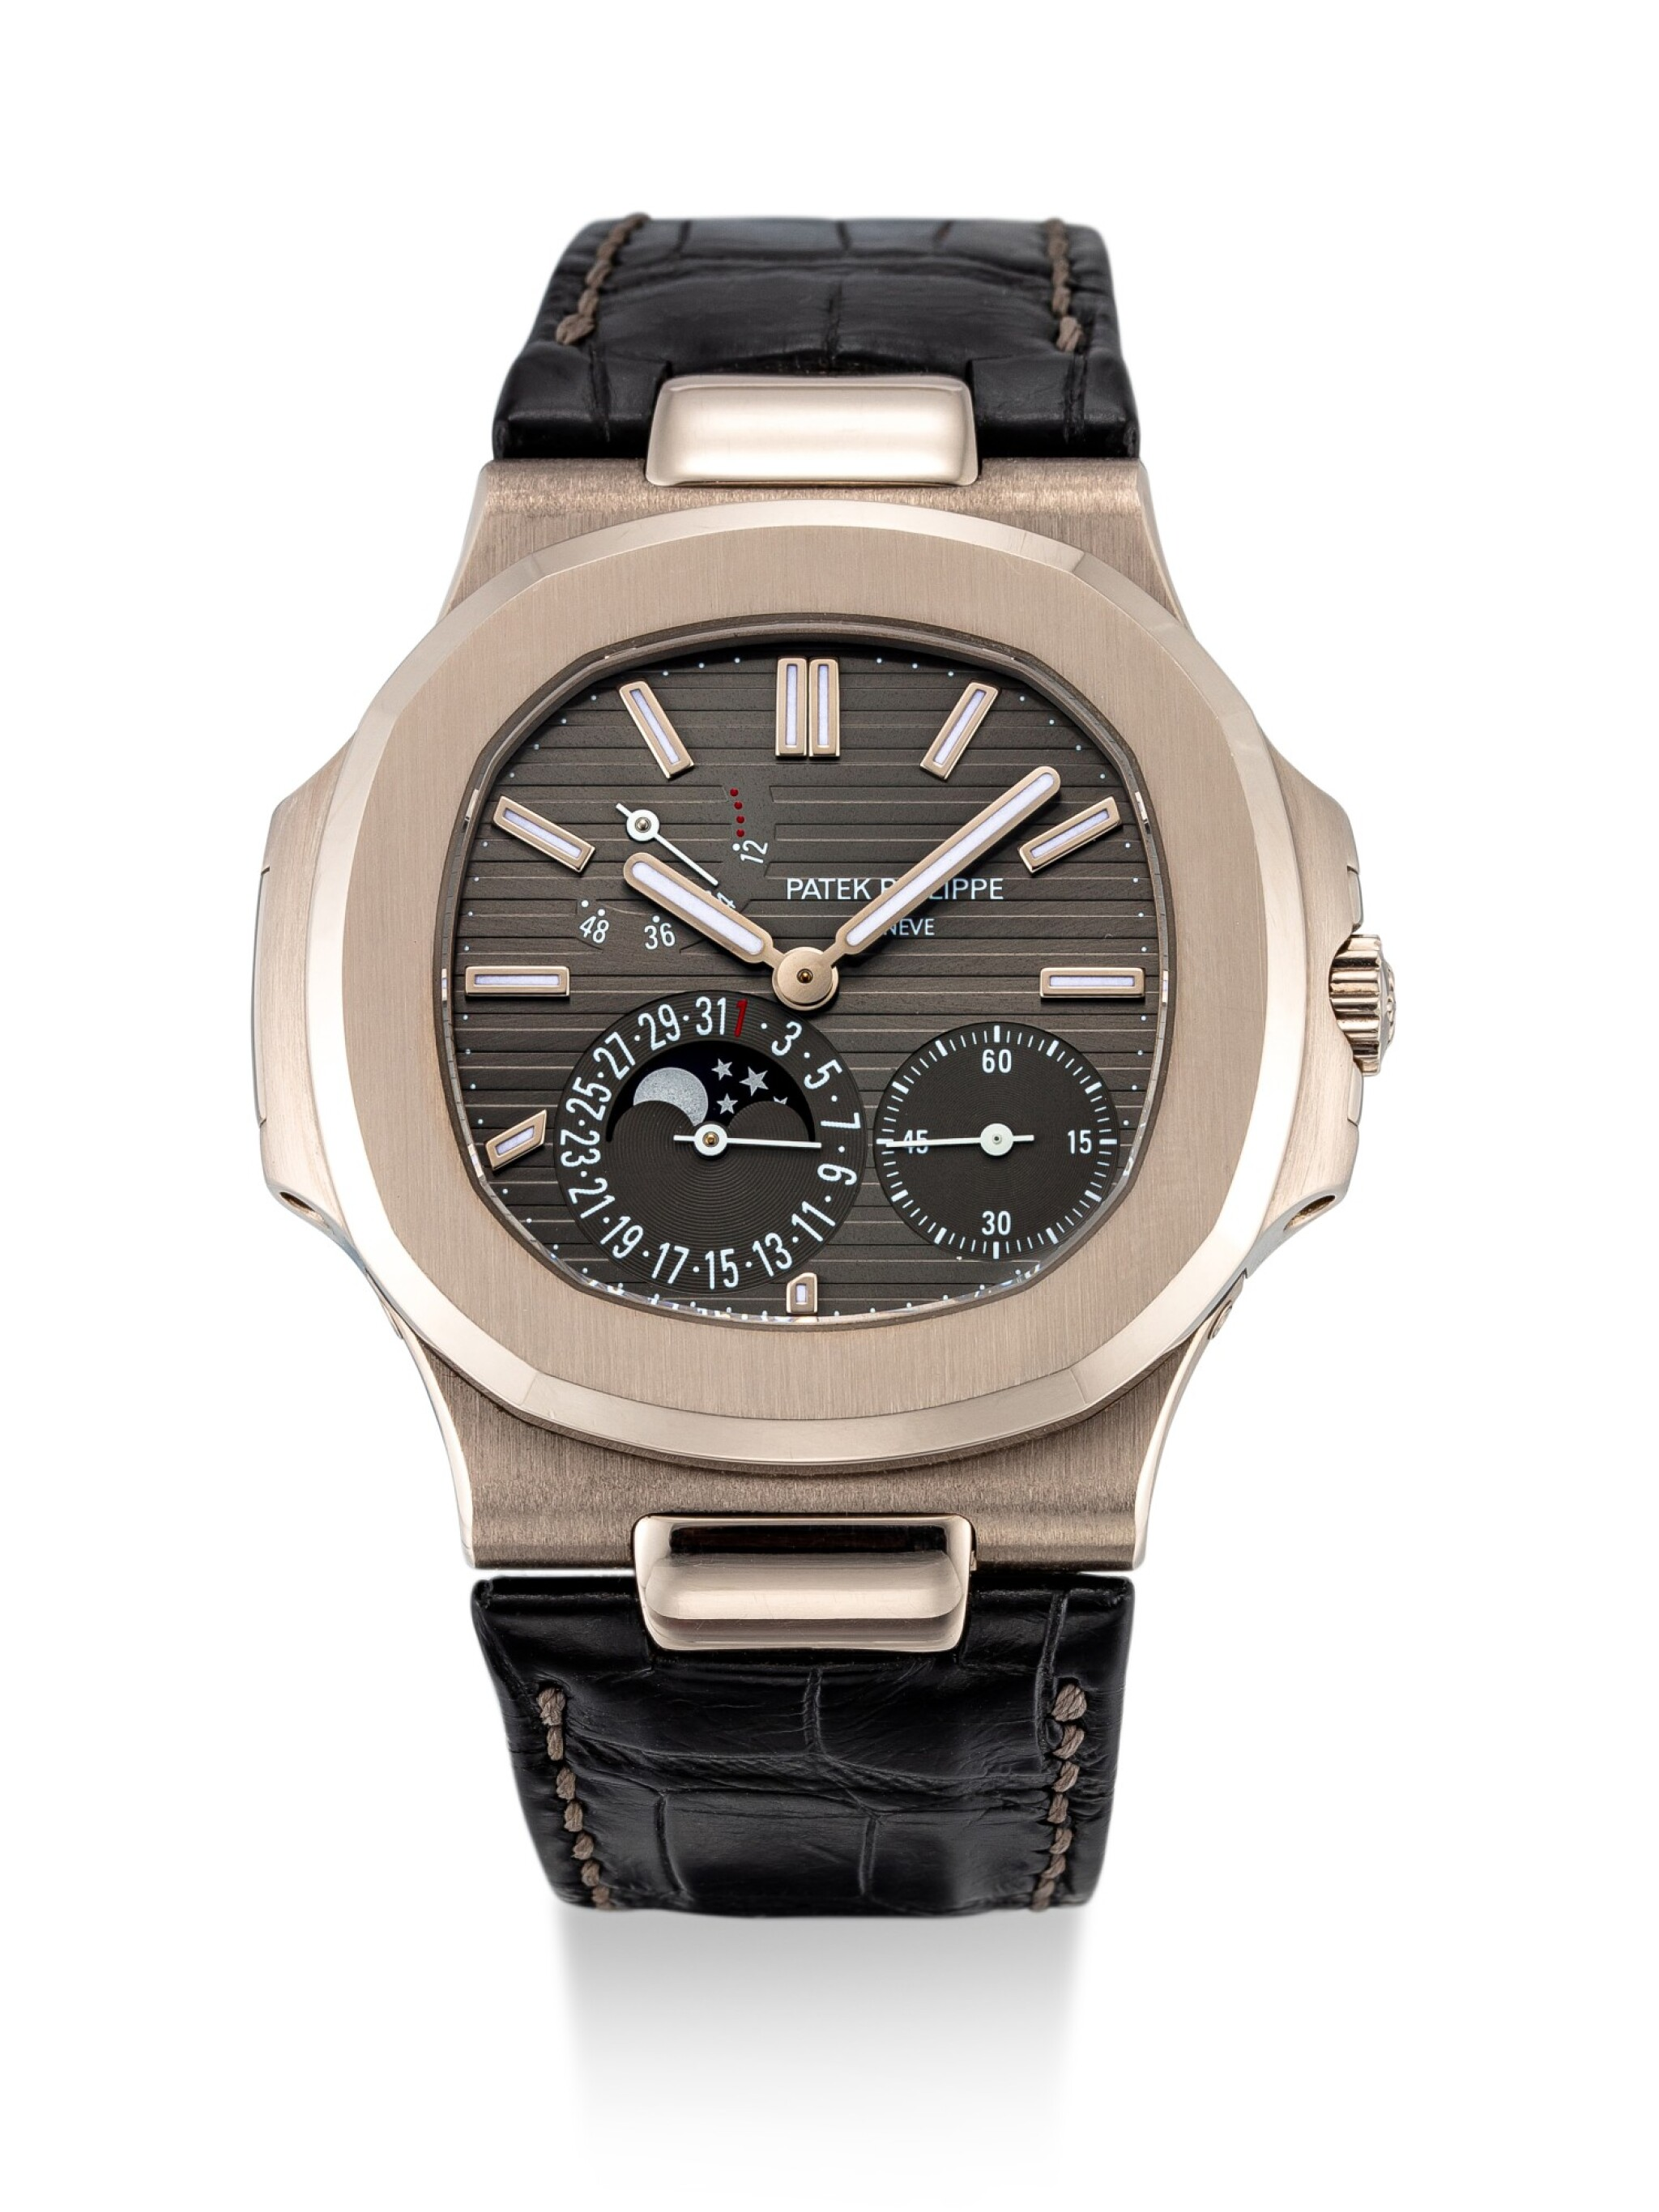 View 1 of Lot 8008. Patek Philippe | Nautilus, Reference 5712, A white gold wristwatch with date, moon phases and power reserve indication, Circa 2016 | 百達翡麗 | Nautilus 型號5712   白金腕錶,備日期、月相及動力儲備顯示,約2016年製.